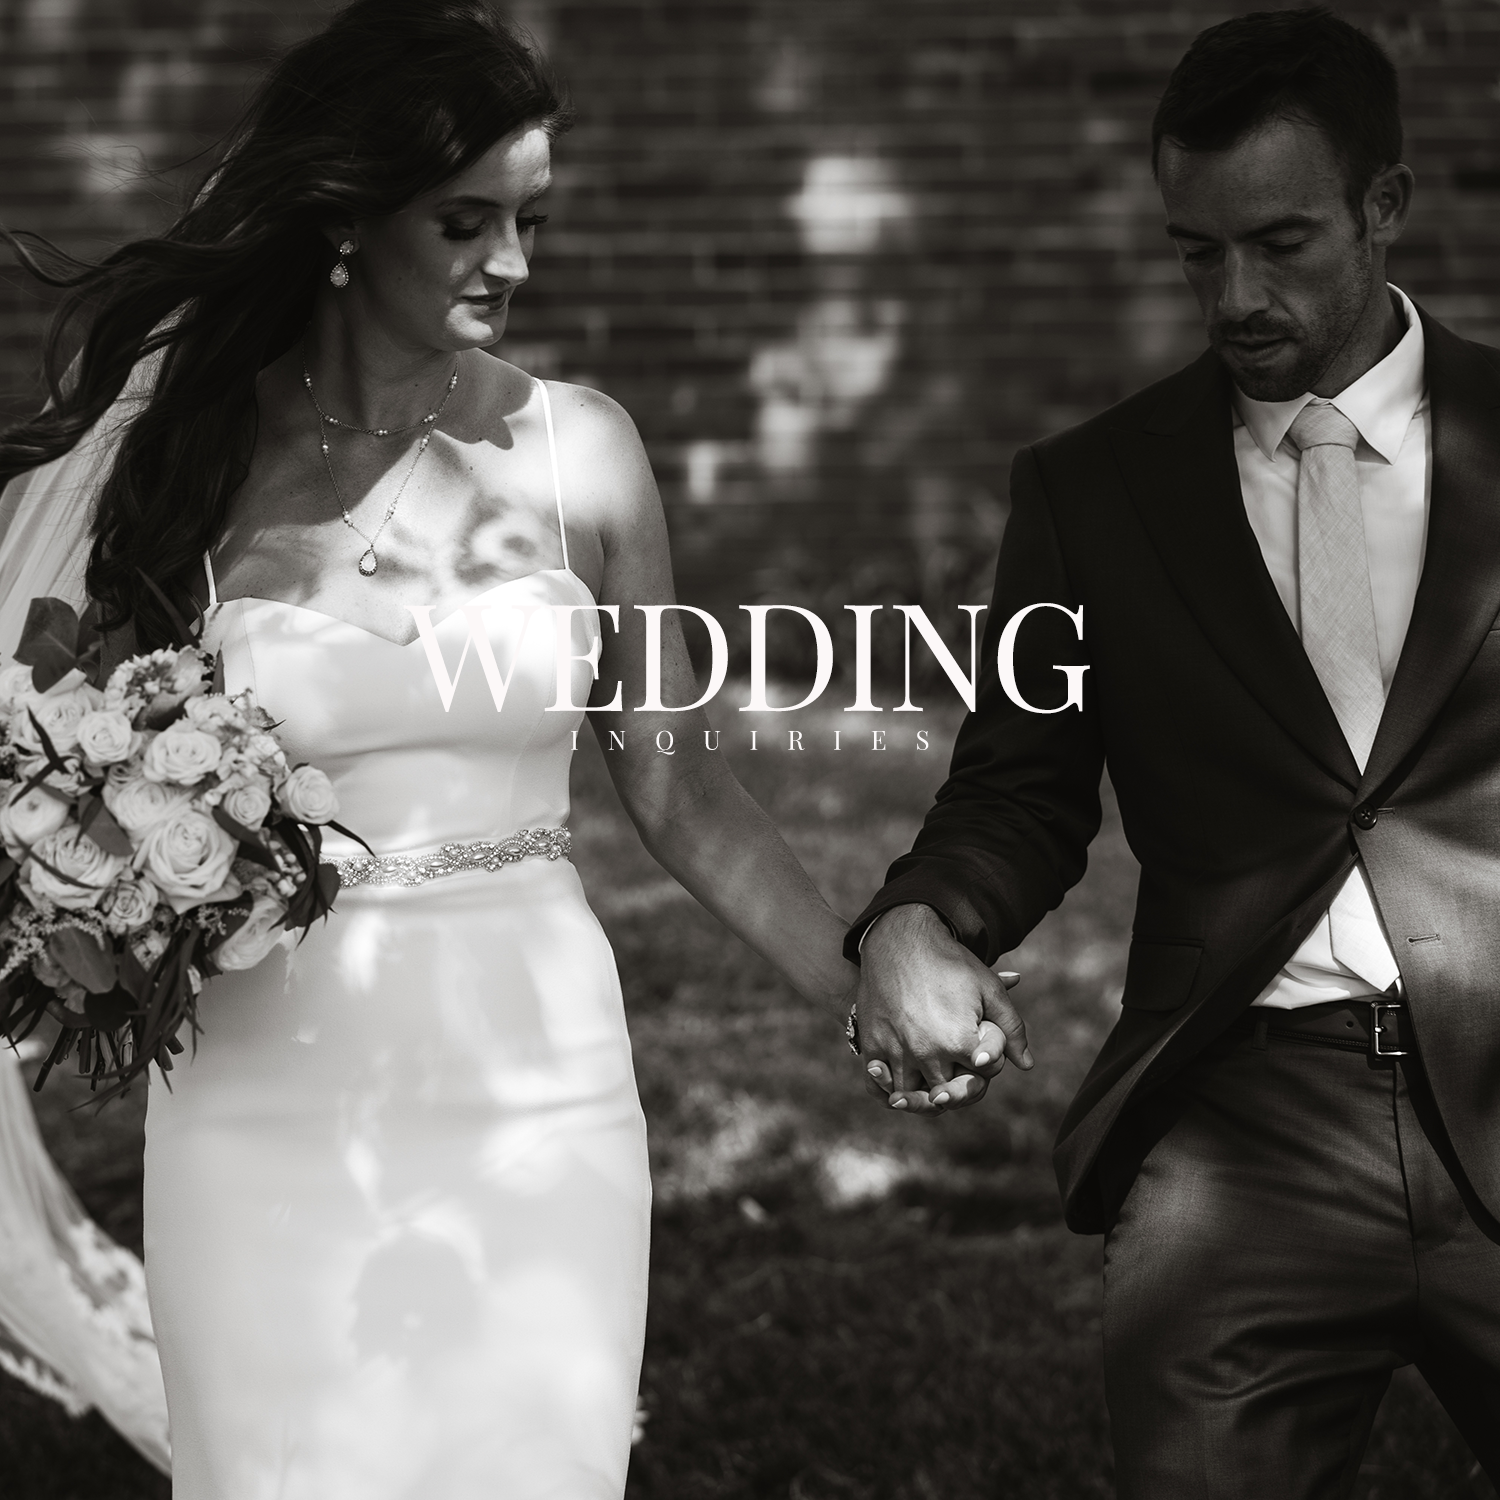 wedding-couple-walking-des-moines-iowa-raelyn-ramey-photographer-portrait-photographer.png